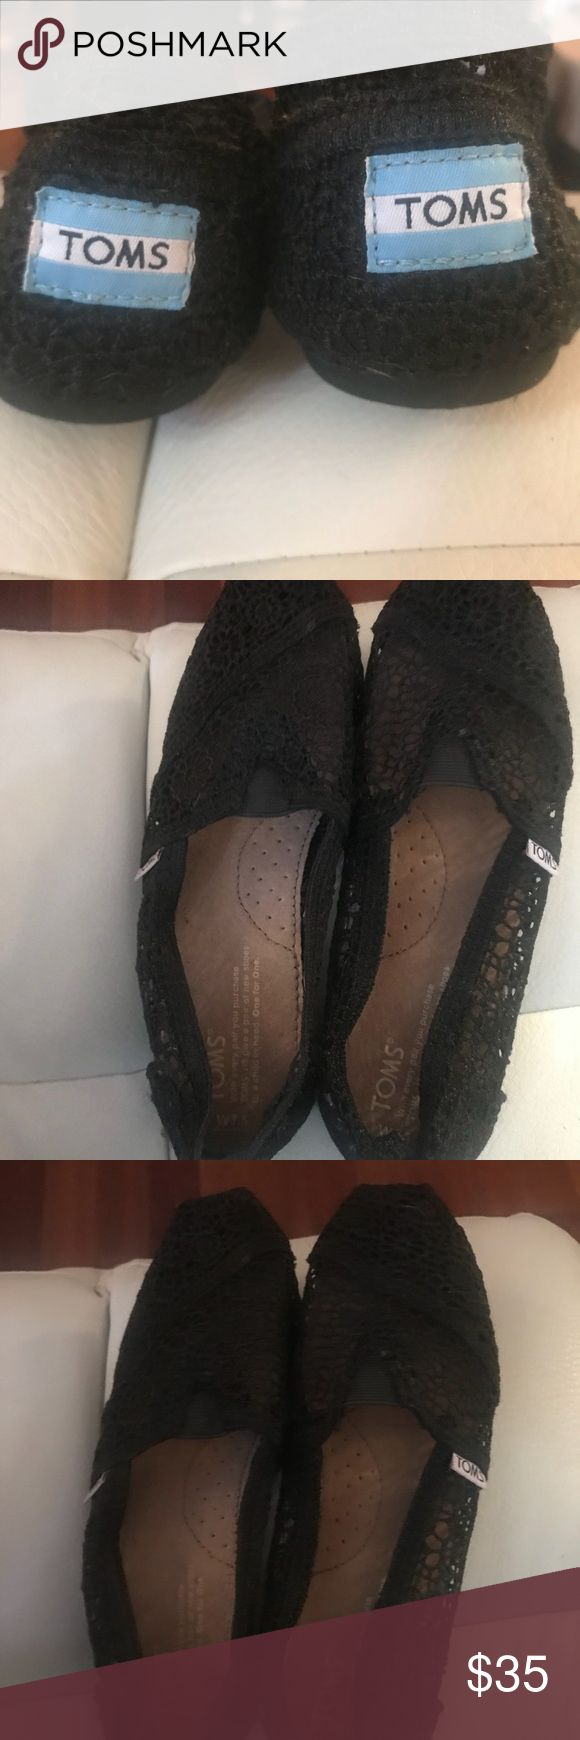 Black Lace TOM's Black Lace Tom's. Worn maybe once. In great condition. Toms Shoes Slippers